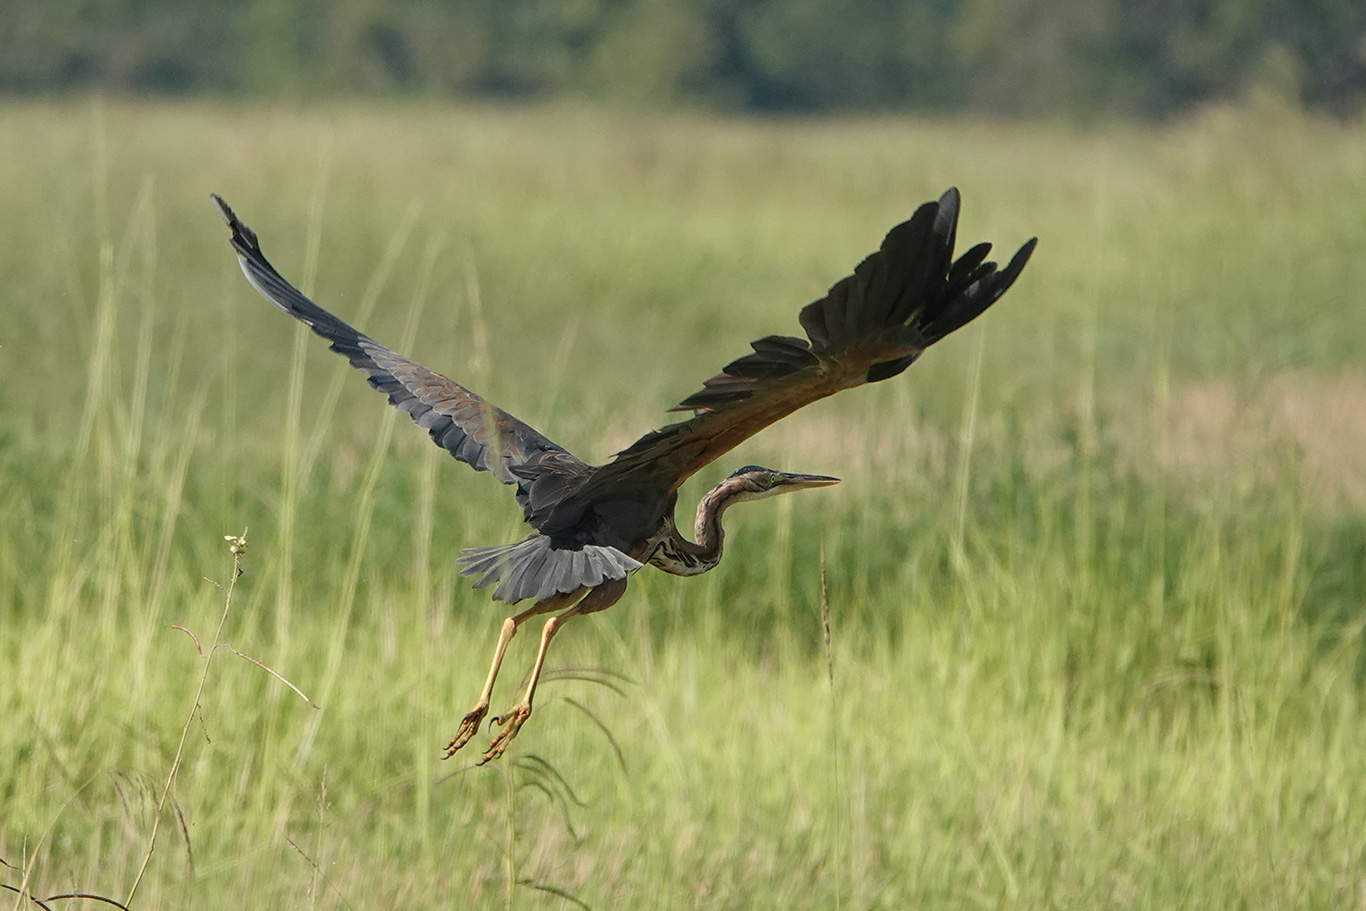 Purple Heron, Jakhaly, The Gambia.